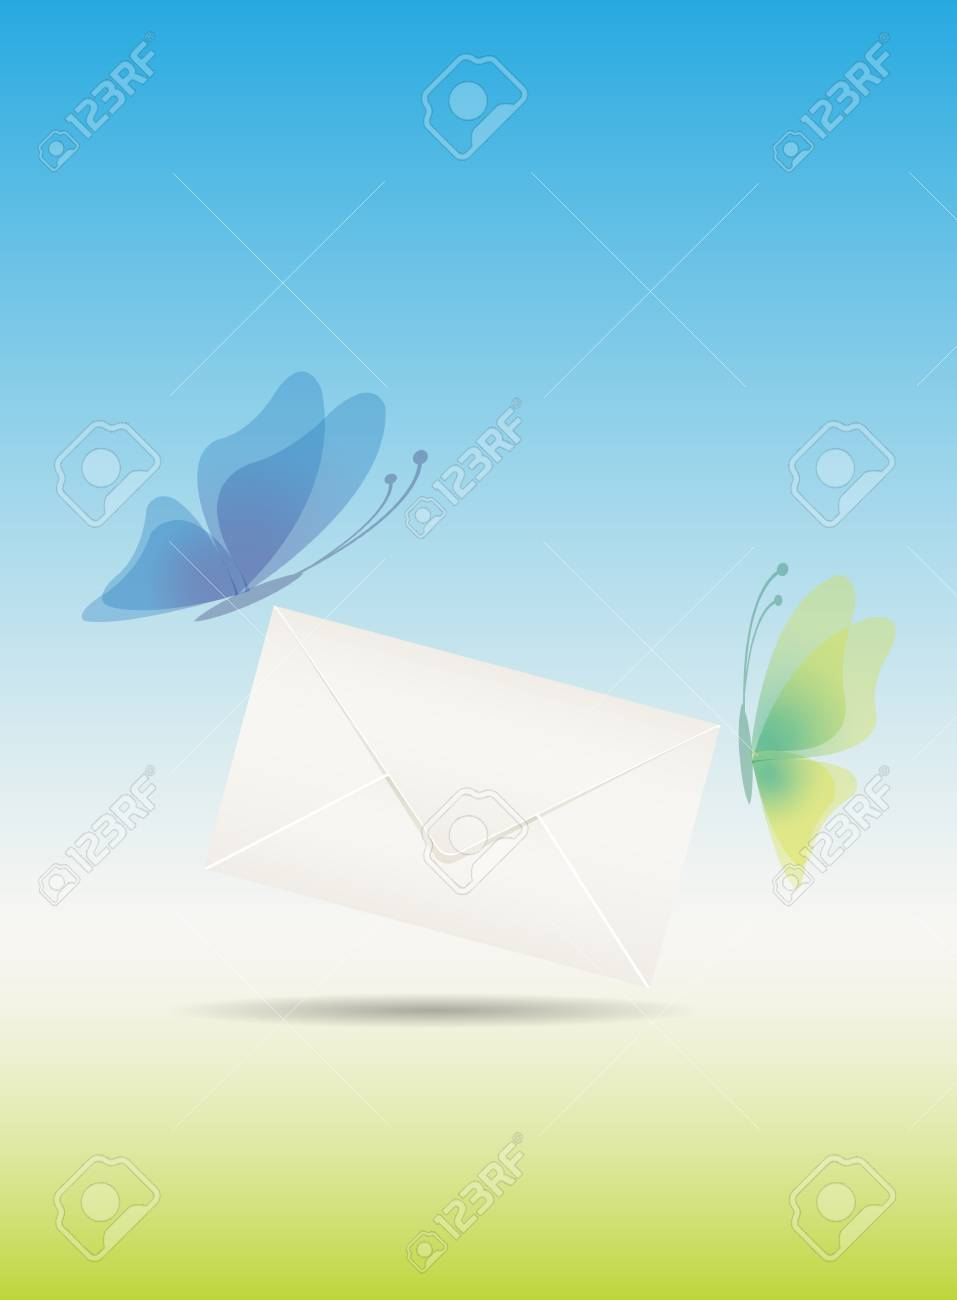 Love message with butterflies illustration easy editable Stock Vector - 12494034